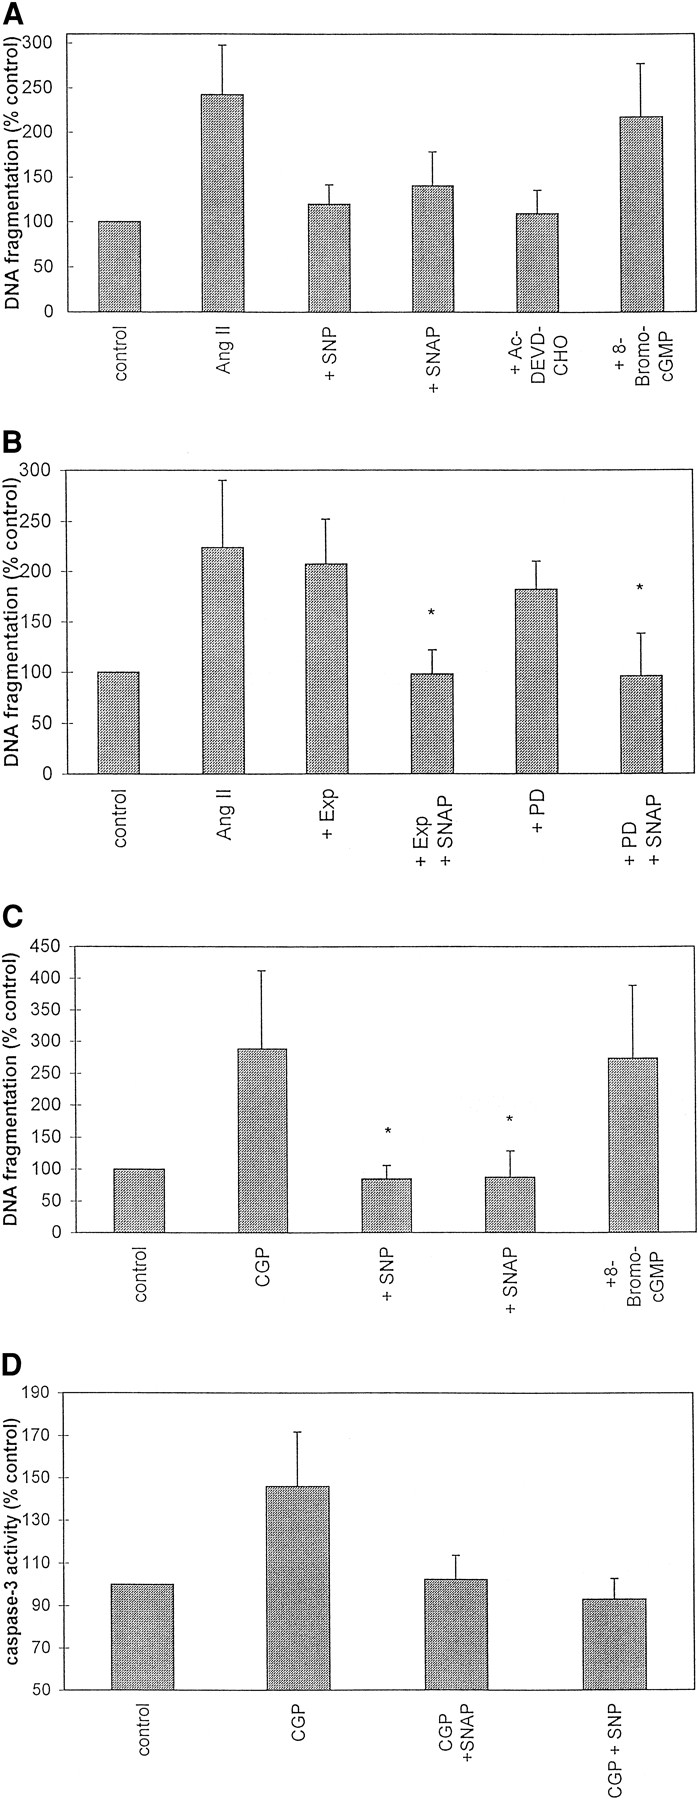 Angiotensin Ii Induces Apoptosis Of Human Endothelial Cells